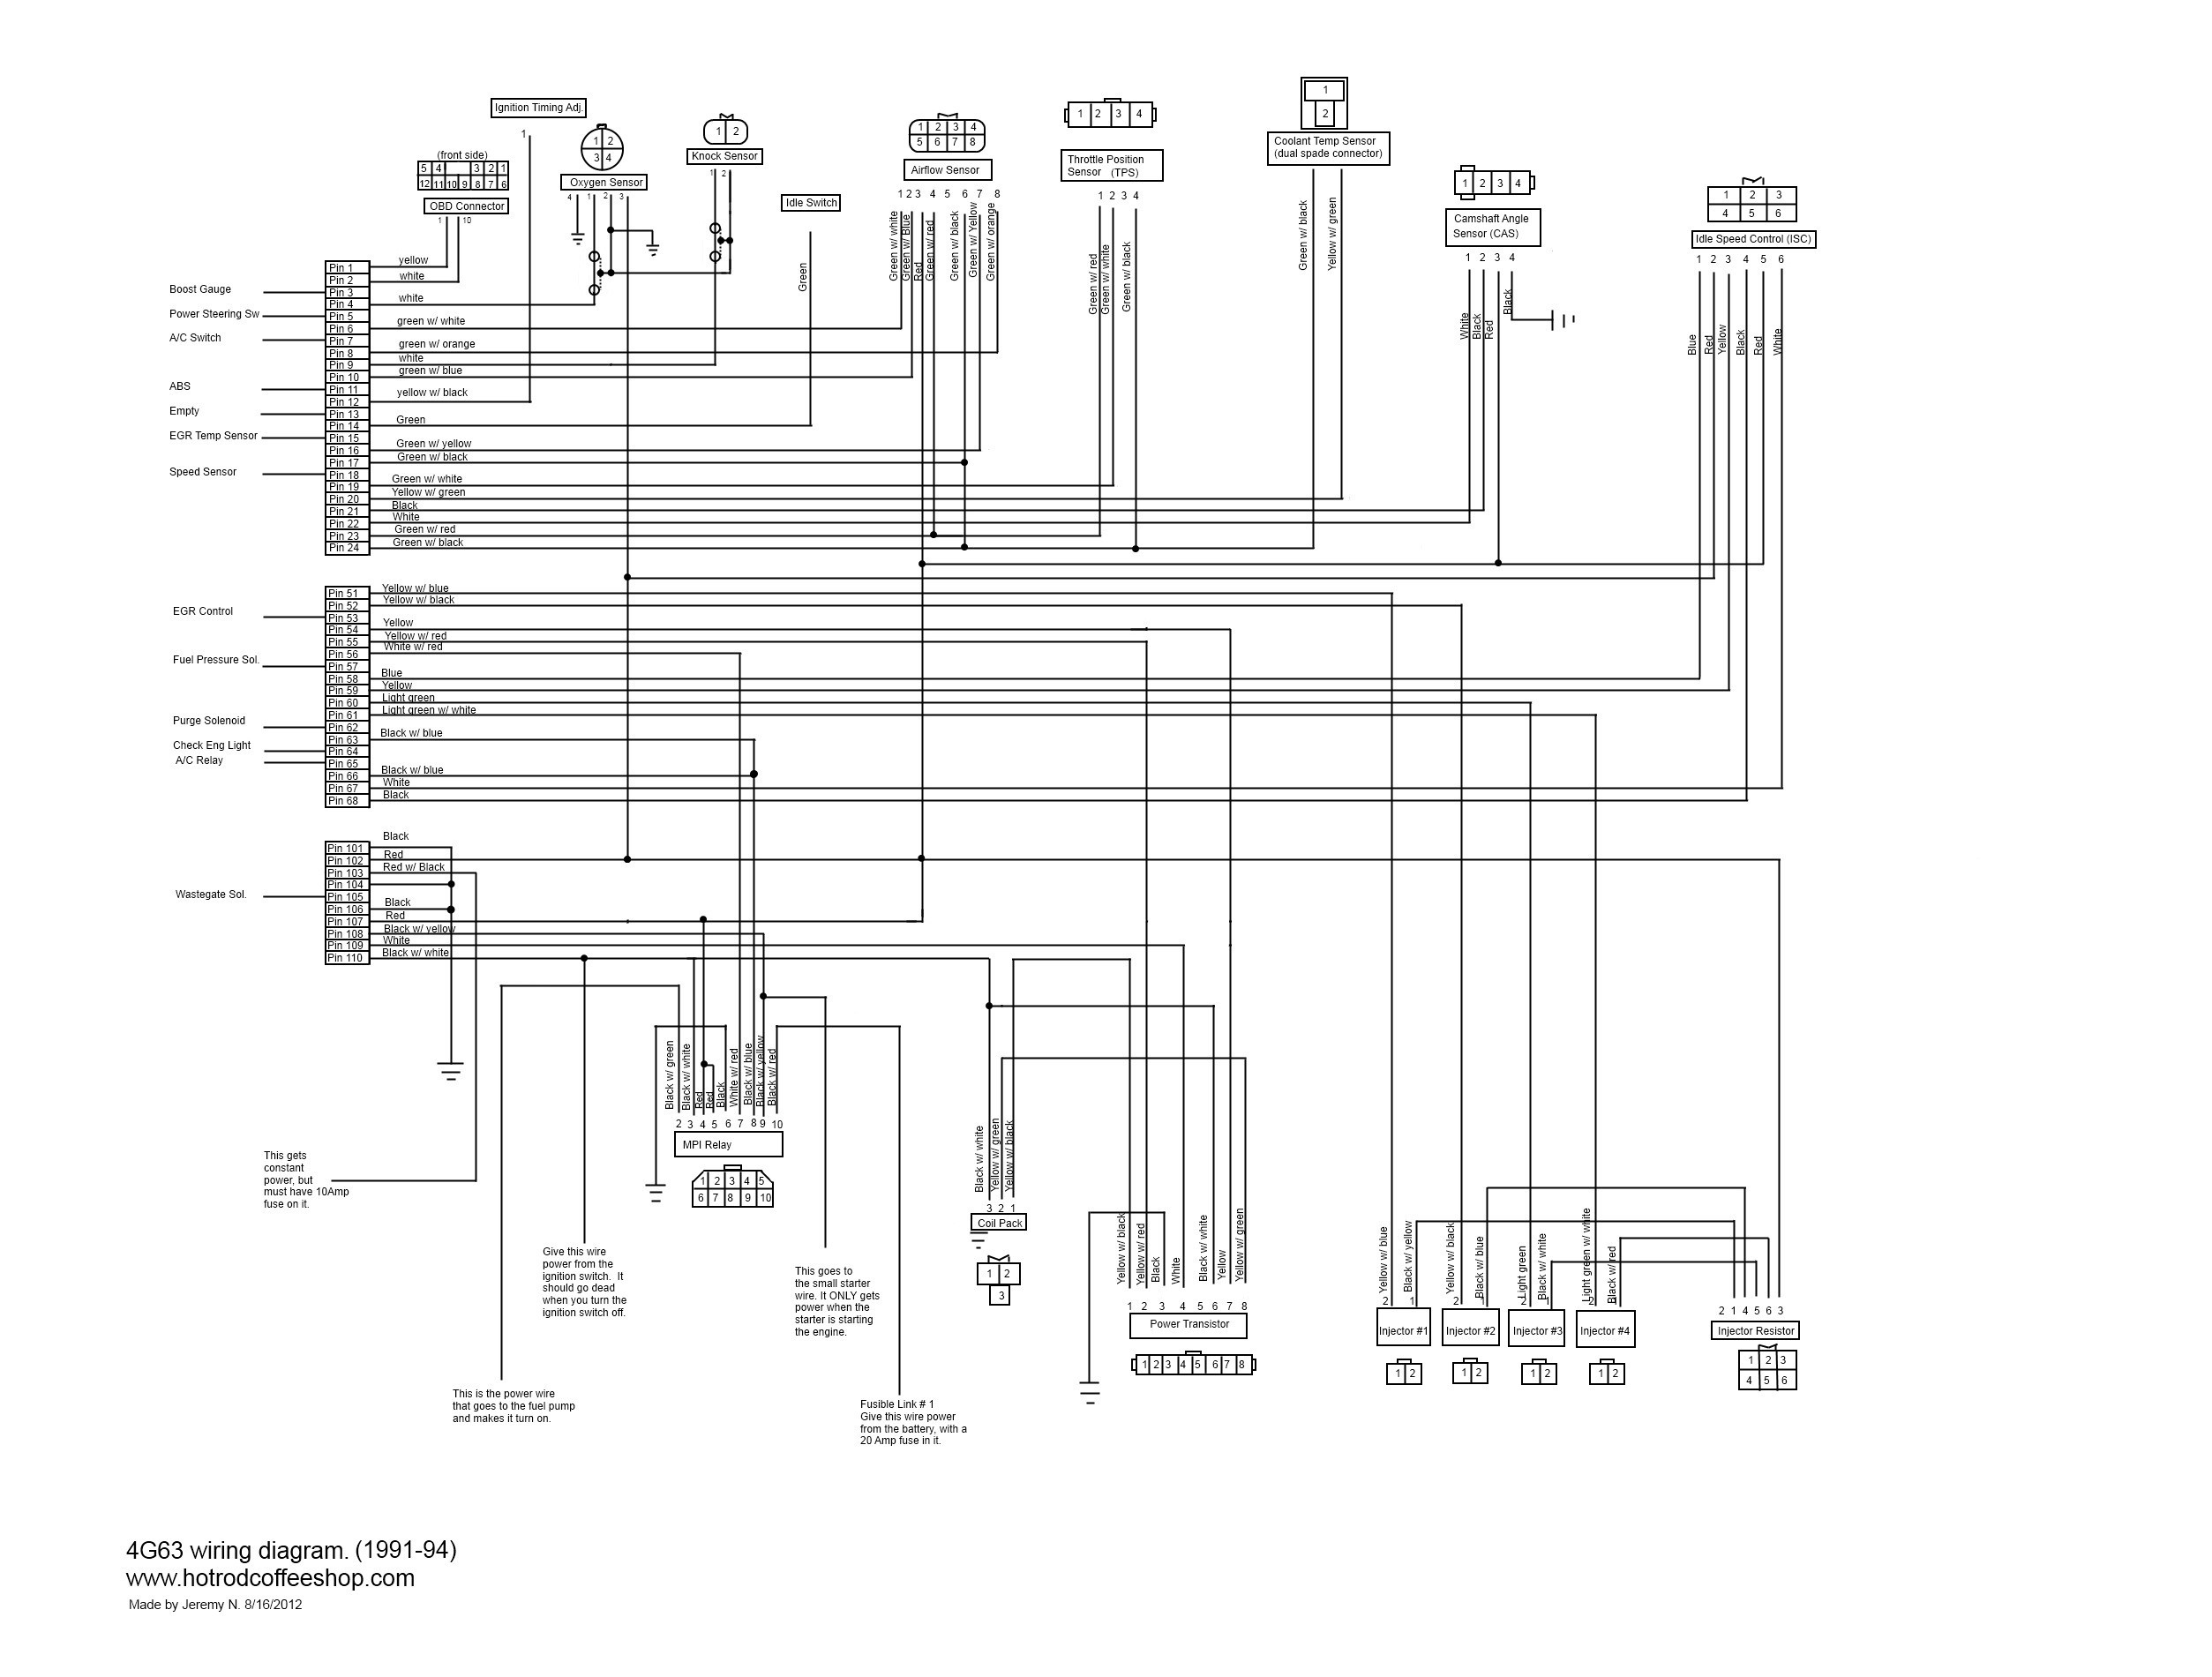 Mitsubishi Engine Diagram - Schematics Online on